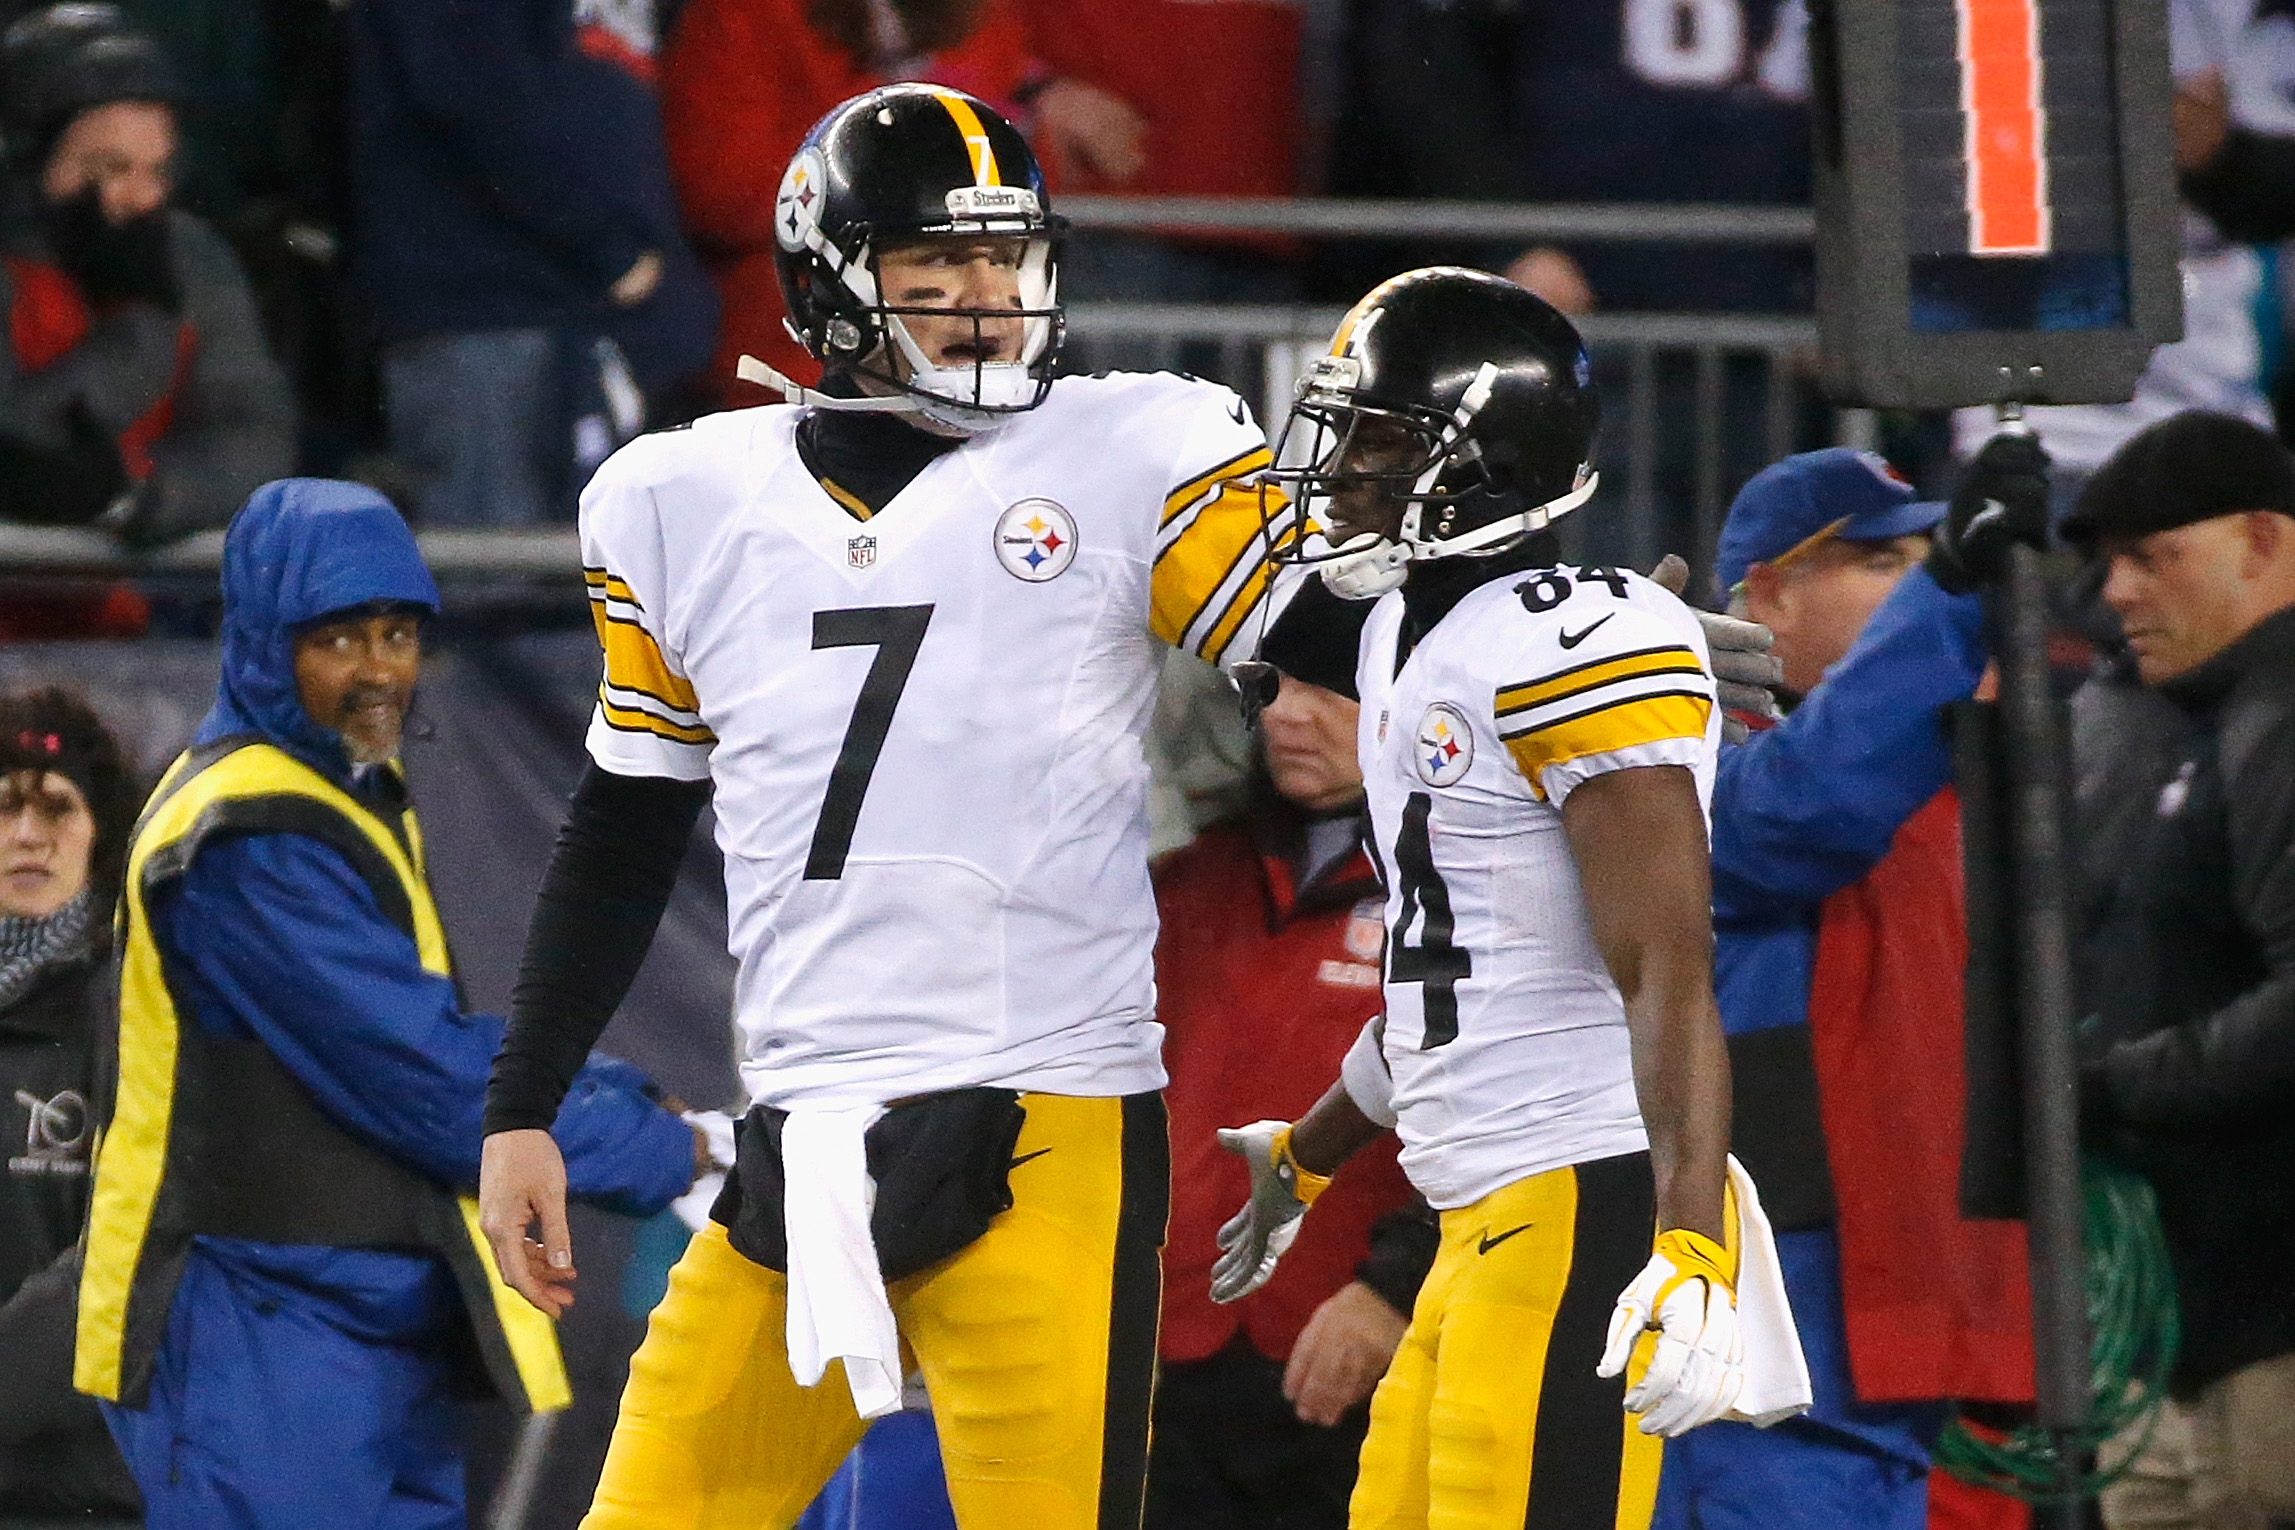 Steelers' Ben Roethlisberger: 'Disappointed' in Antonio Brown's sideline tantrum